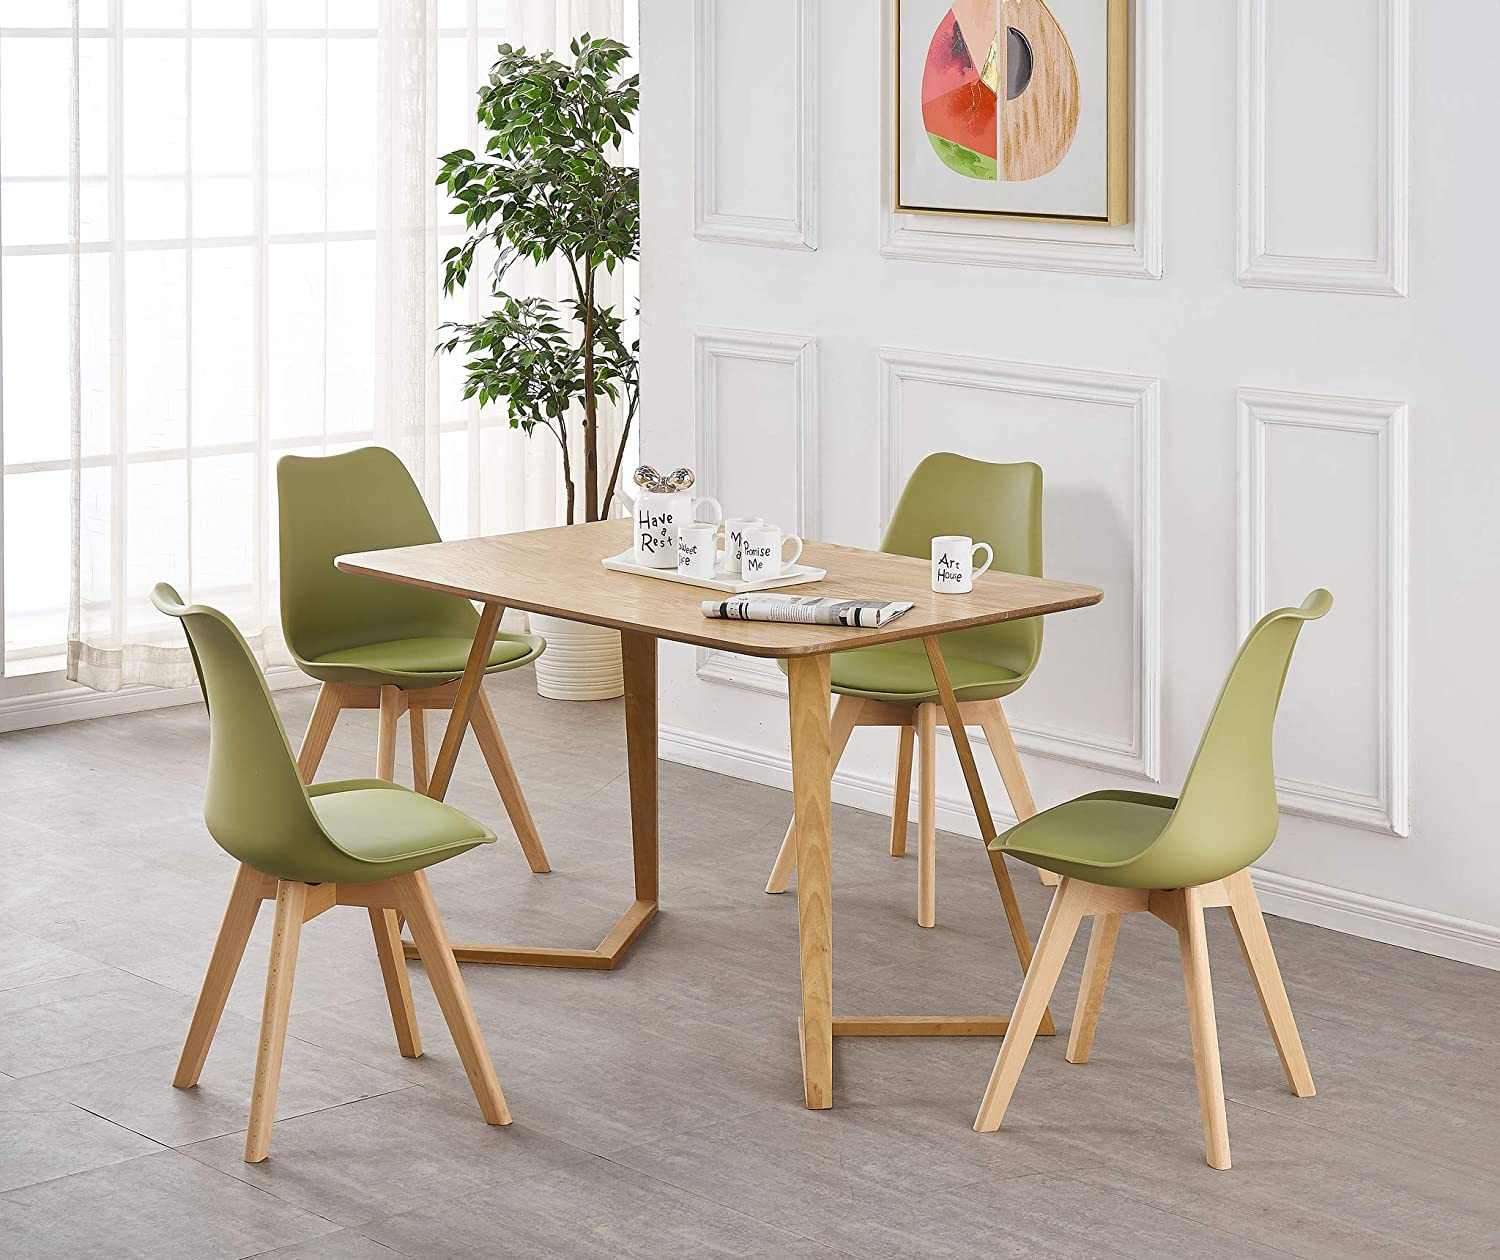 P&N Homewares: Lorenzo Tulip Chair Plastic Wood Retro Dining Chairs White, Black, Grey, Red, Yellow, Pink, Green, Blue, (GREY - SET OF 2) Lime Green